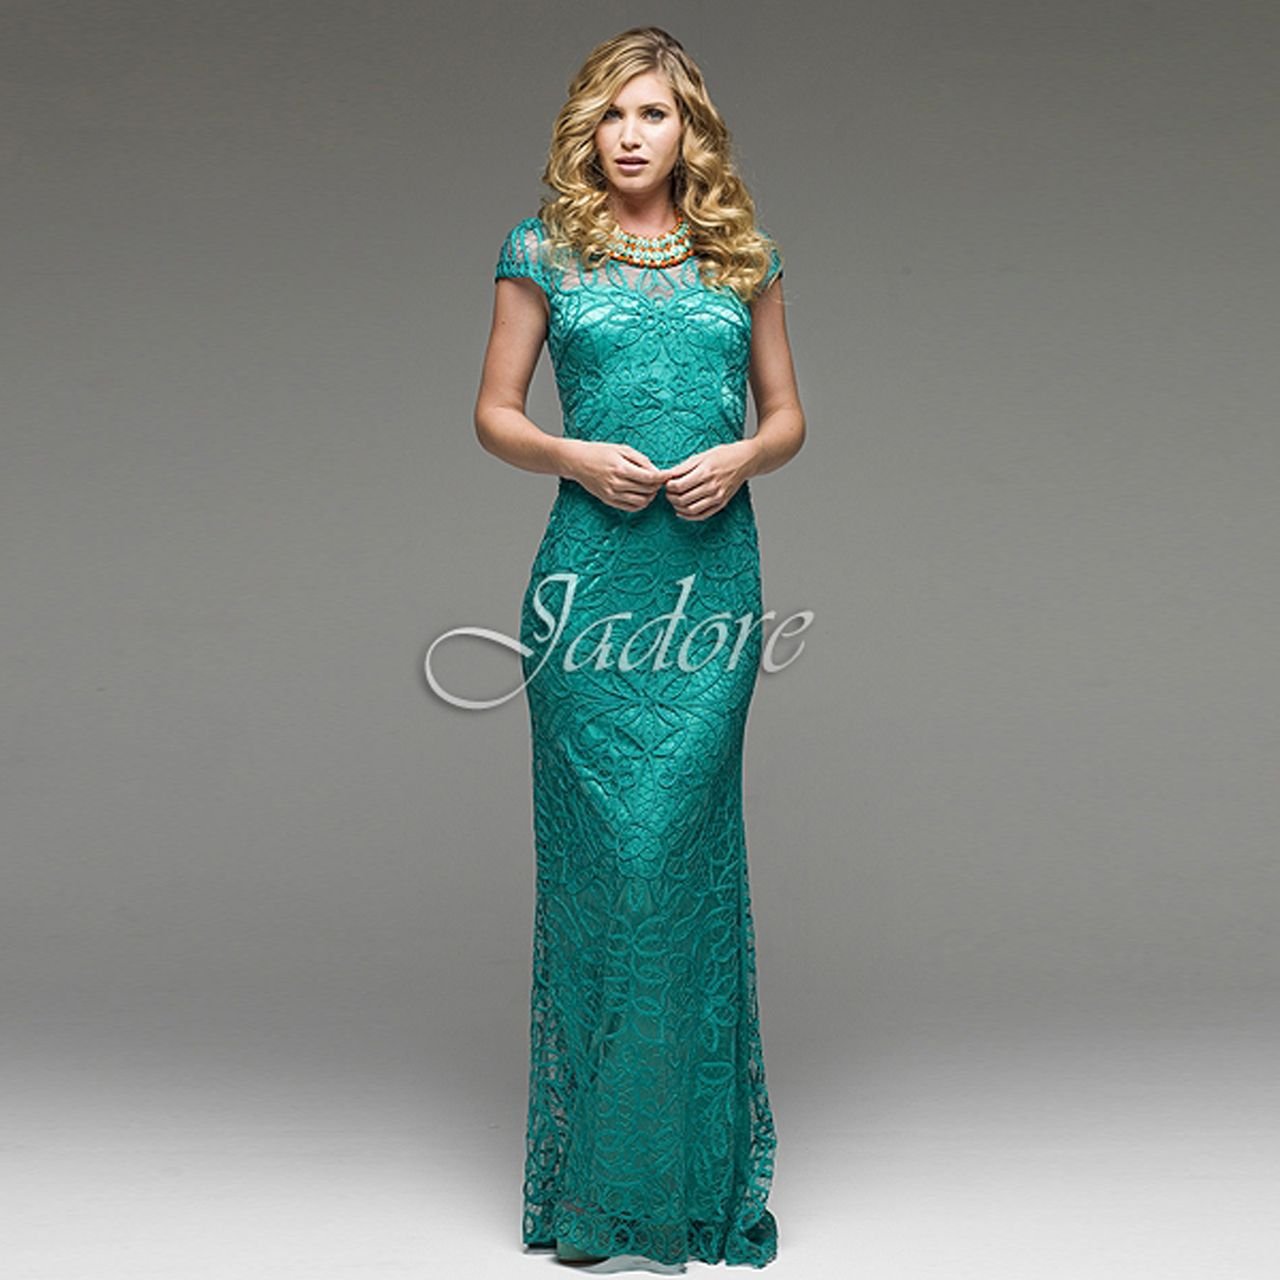 Fashionably yours lilian lace bridemaid dresses in jade 49900 buy modern bridesmaid dresses bridesmaids buy bridesmaids dresses online bridemaid shop melbourne brisbane at fashionably yours bridal sydney ombrellifo Image collections